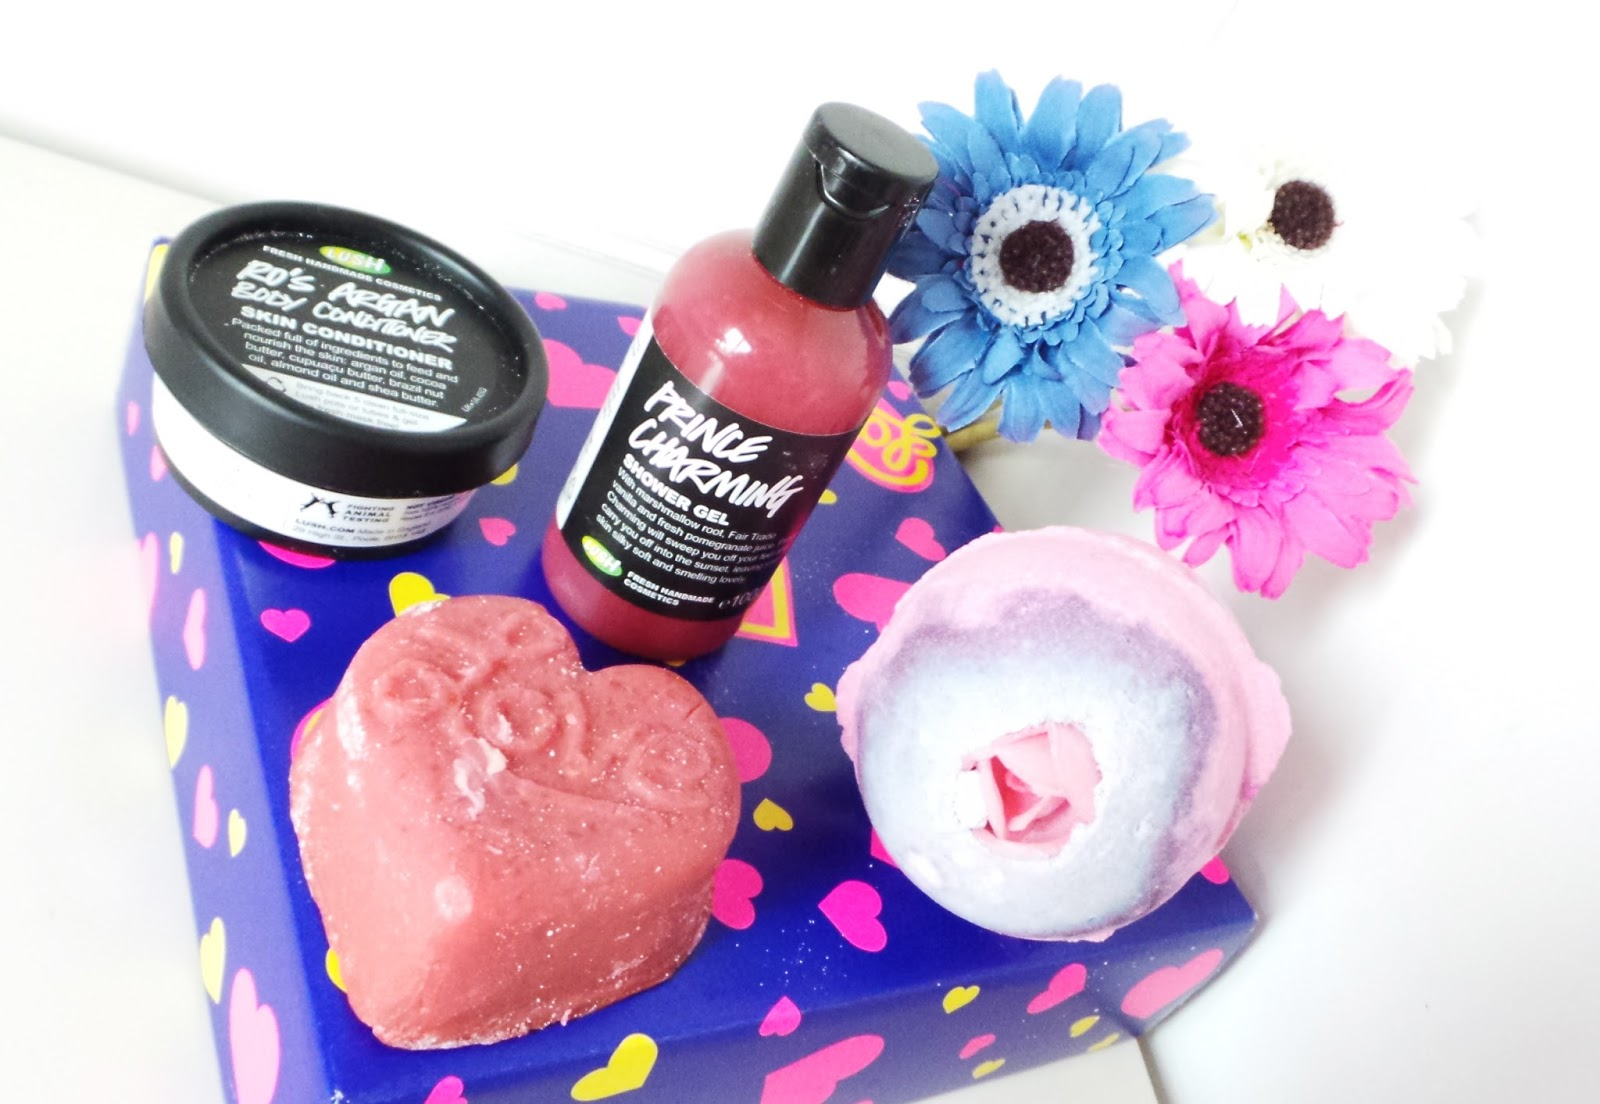 lush love box review and contents, lush love box, lush love, lush gifts, lush gift set, lush review, lush blog review, lush lover, valentines, valentinesgift, gifts for loved ones, uk beauty blog, beauty blog, beauty blogger, bblogger, lush prince charming shower gel, lush ro's argan body conditioner, lush sex bomb bath bomb, lush love soap bar, lush massage bar, fiance,